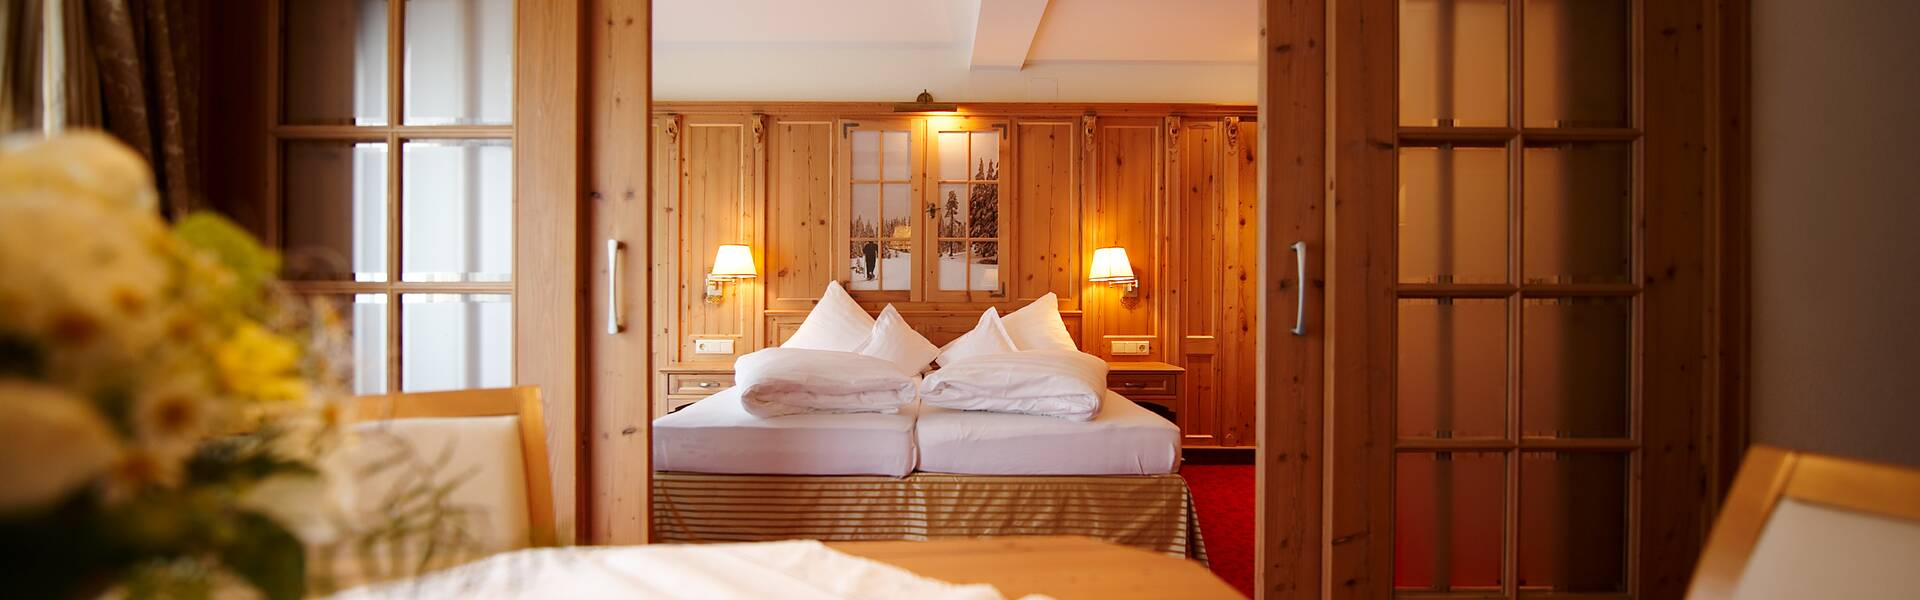 junior suite ischgl